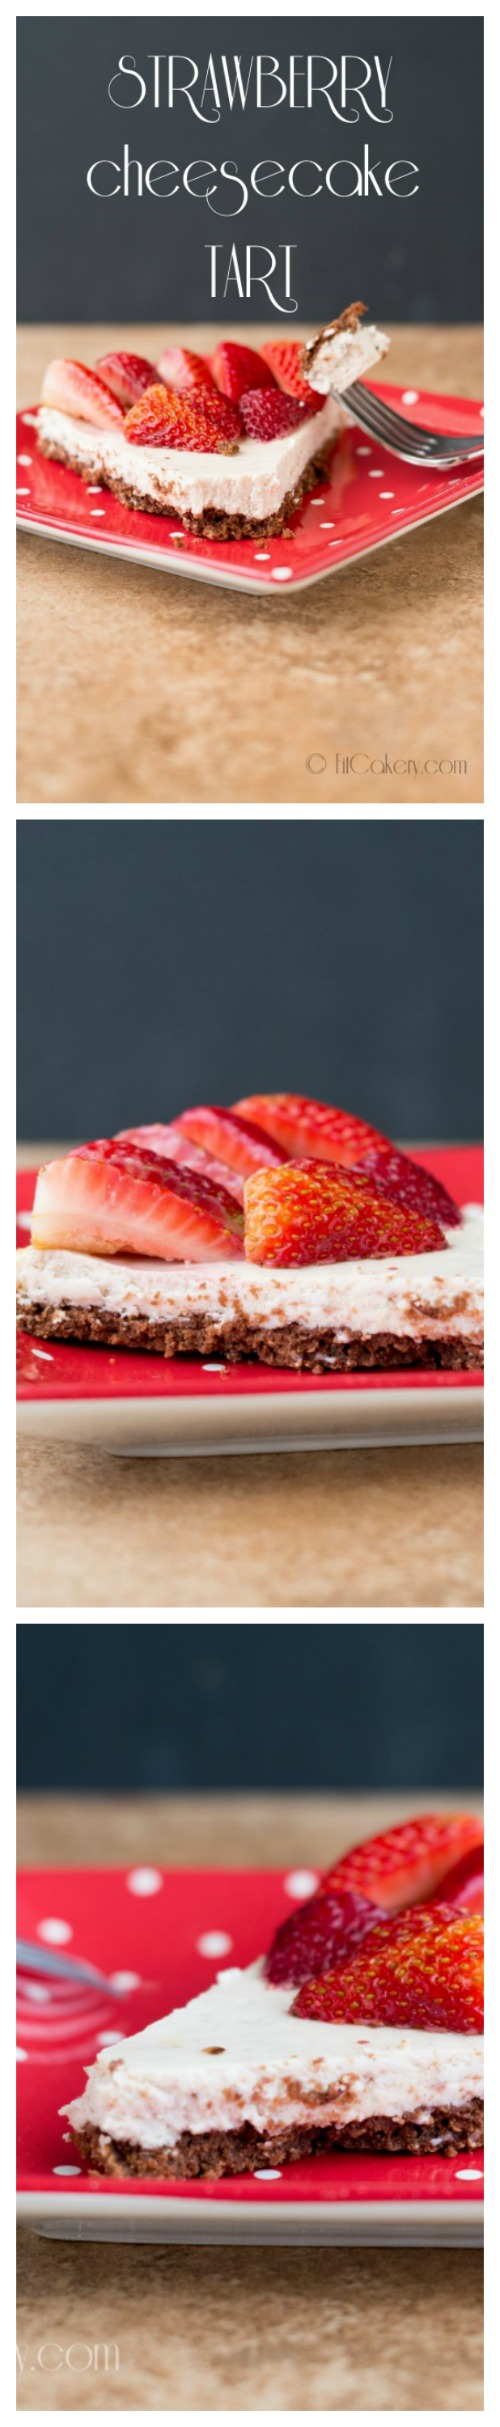 Strawberry Cheesecake Tart with Chocolate Crust recipe - gluten-free and vegan-friendly | FitCakery.com